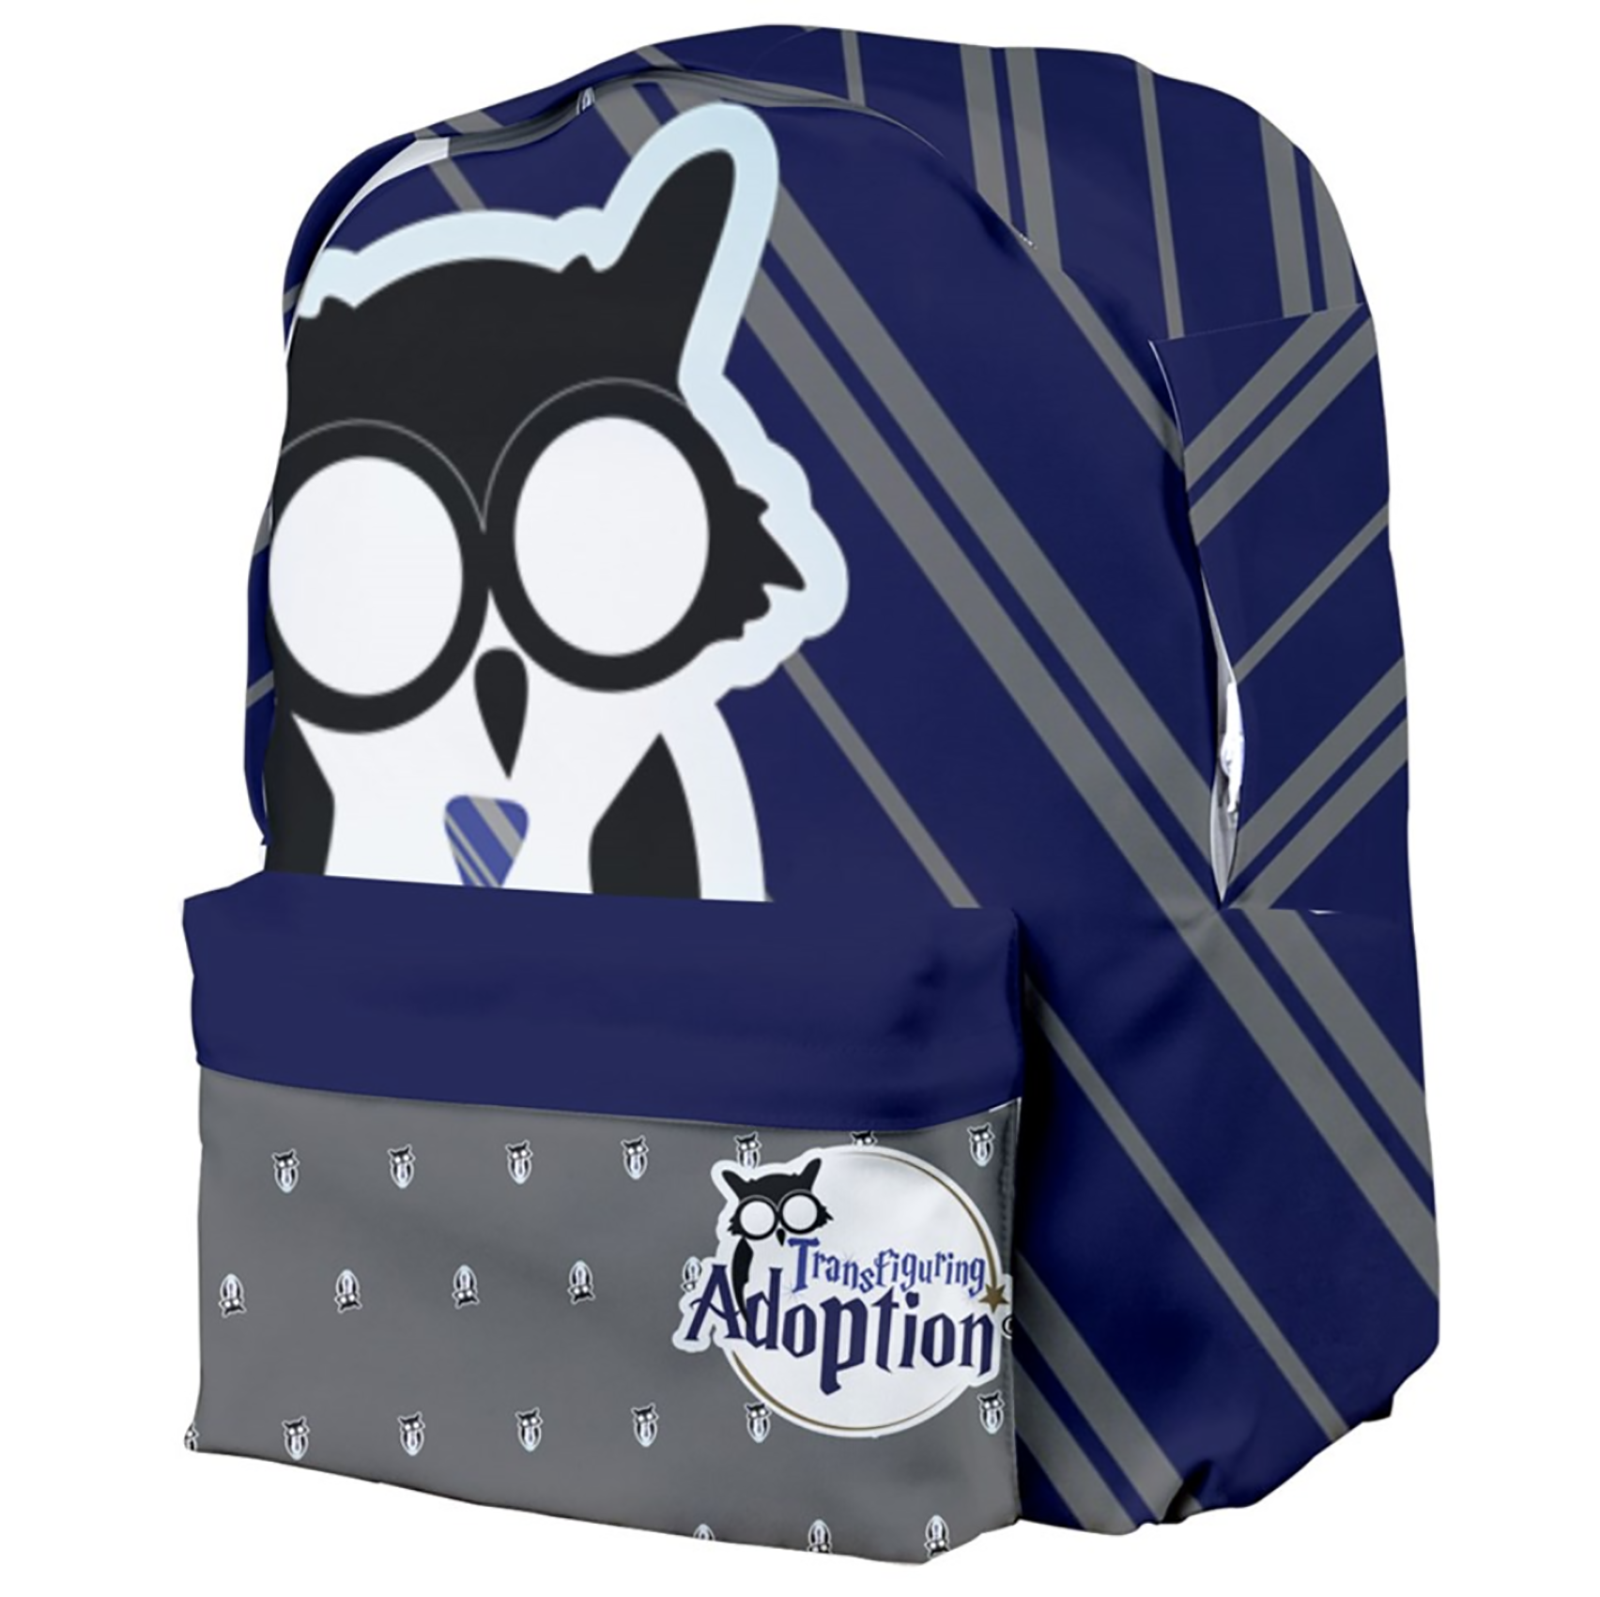 Blue & Gray Giant Backpack - Inspired by Ravenclaw